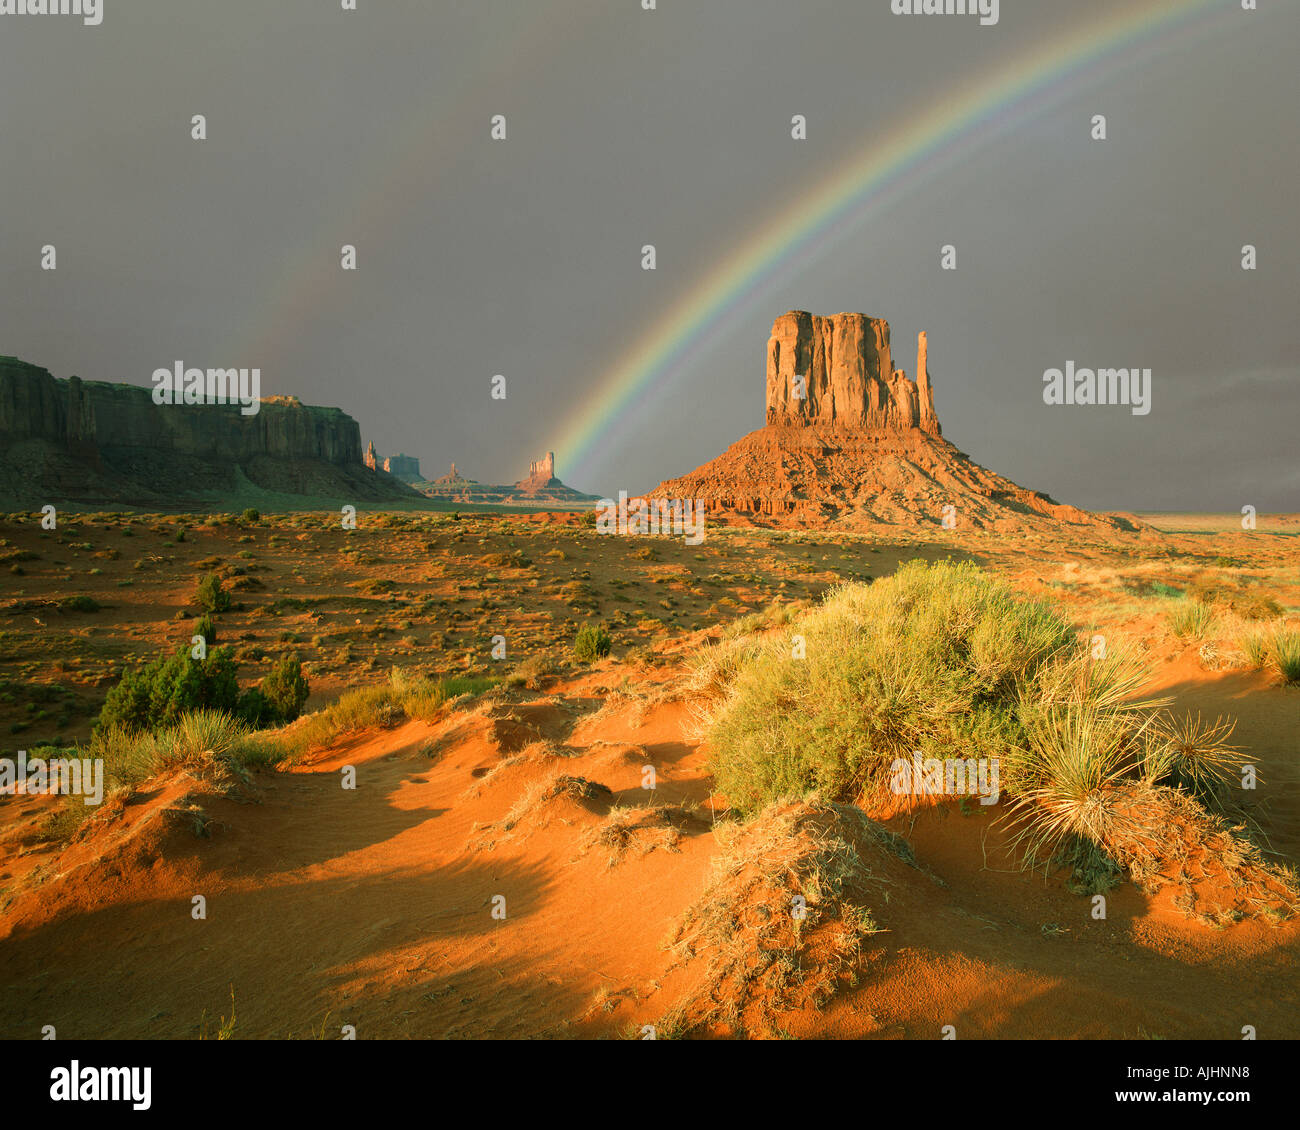 USA - ARIZONA:  Monument Valley Navajo Tribal Park - Stock Image